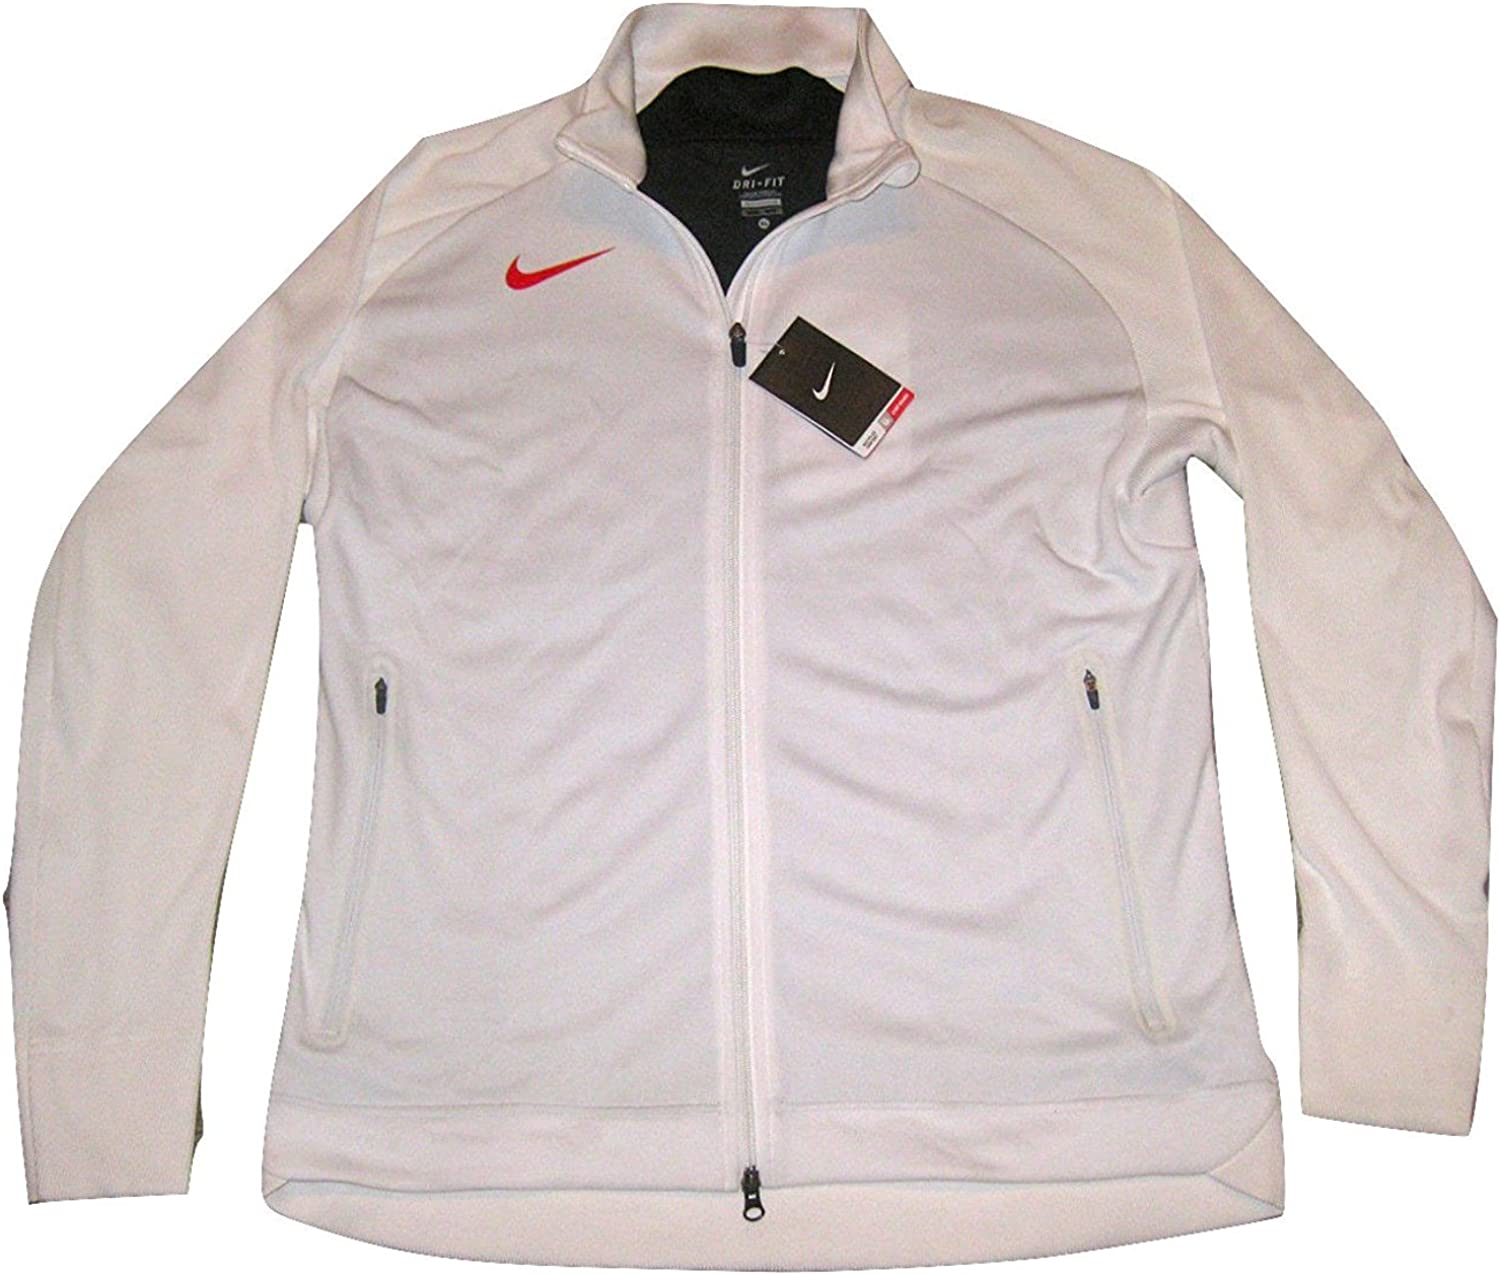 Nike N12 Country Japan Mens Track Jacket 466404 Olympics Rio White RED Flag